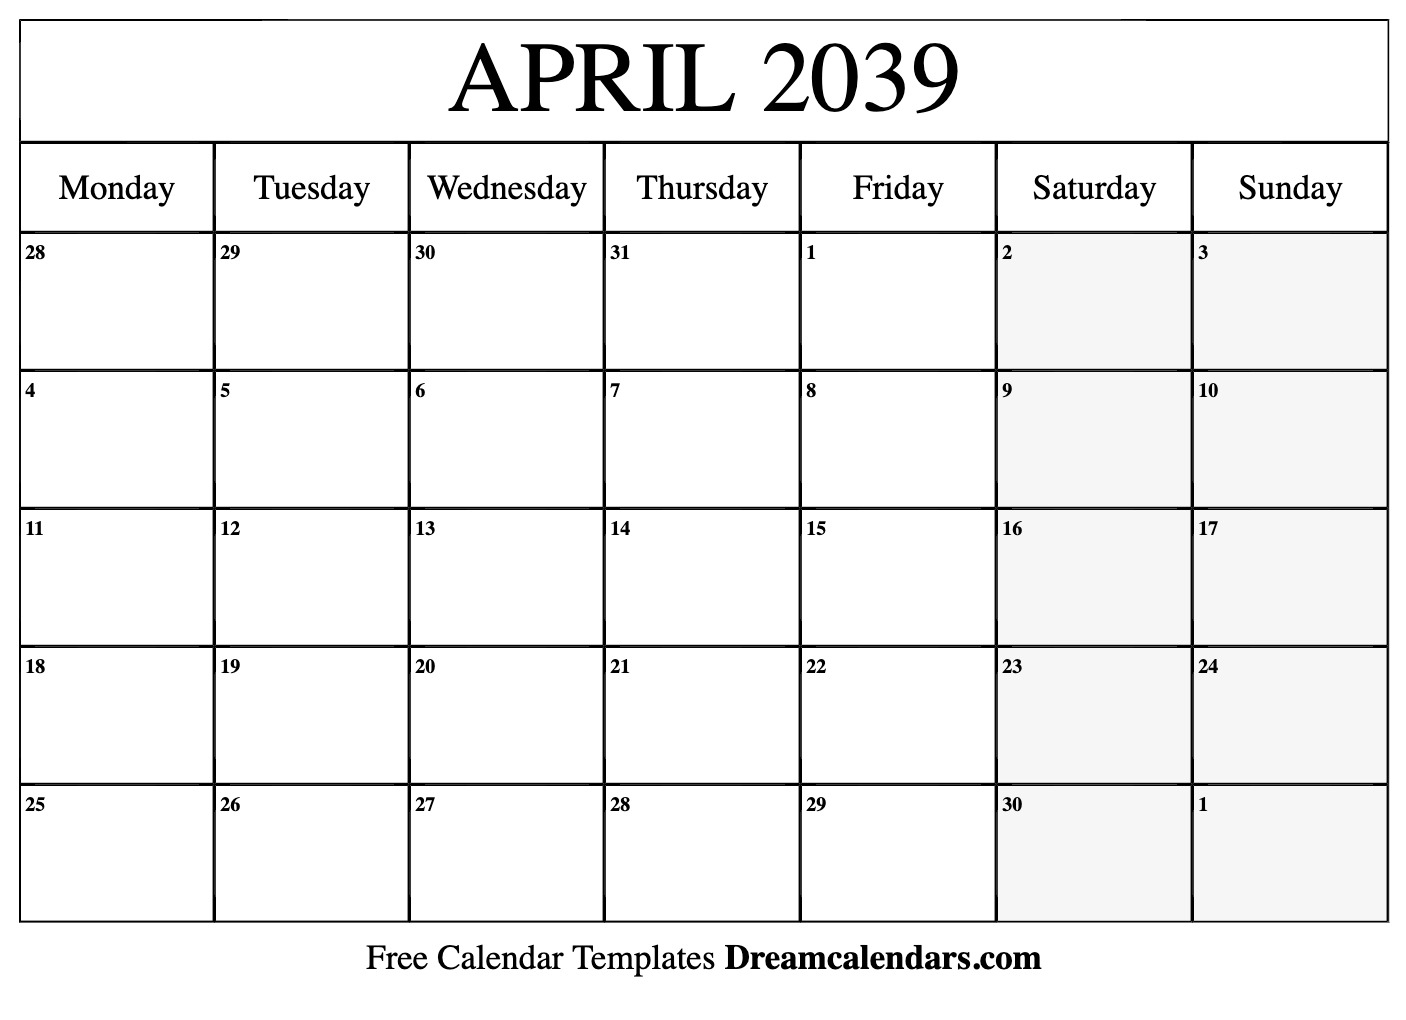 Printable April 2039 Calendar regarding Calendar Sunset Sunrise Length Printable